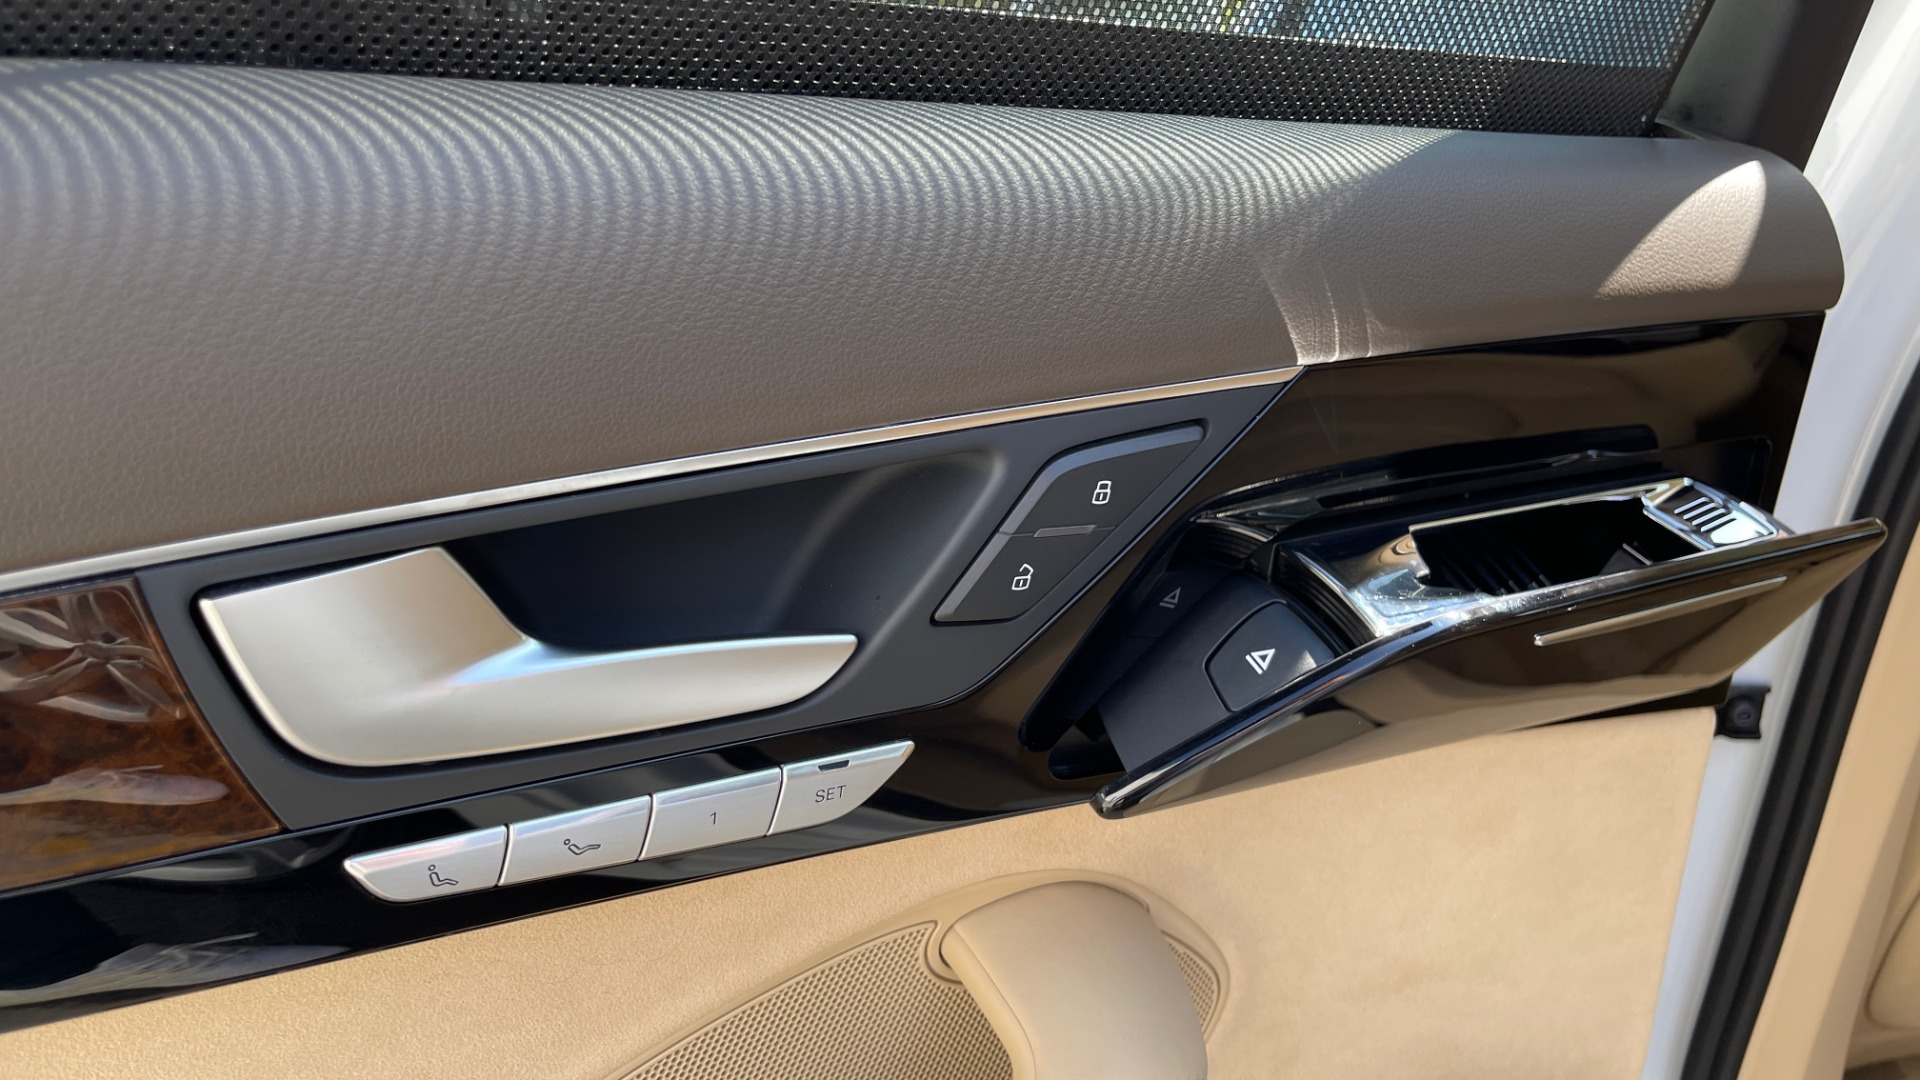 Used 2018 Audi A8 L SPORT 4.0T / EXECUTIVE PKG / NAV / BOSE / SUNROOF / REARVIEW for sale Sold at Formula Imports in Charlotte NC 28227 57